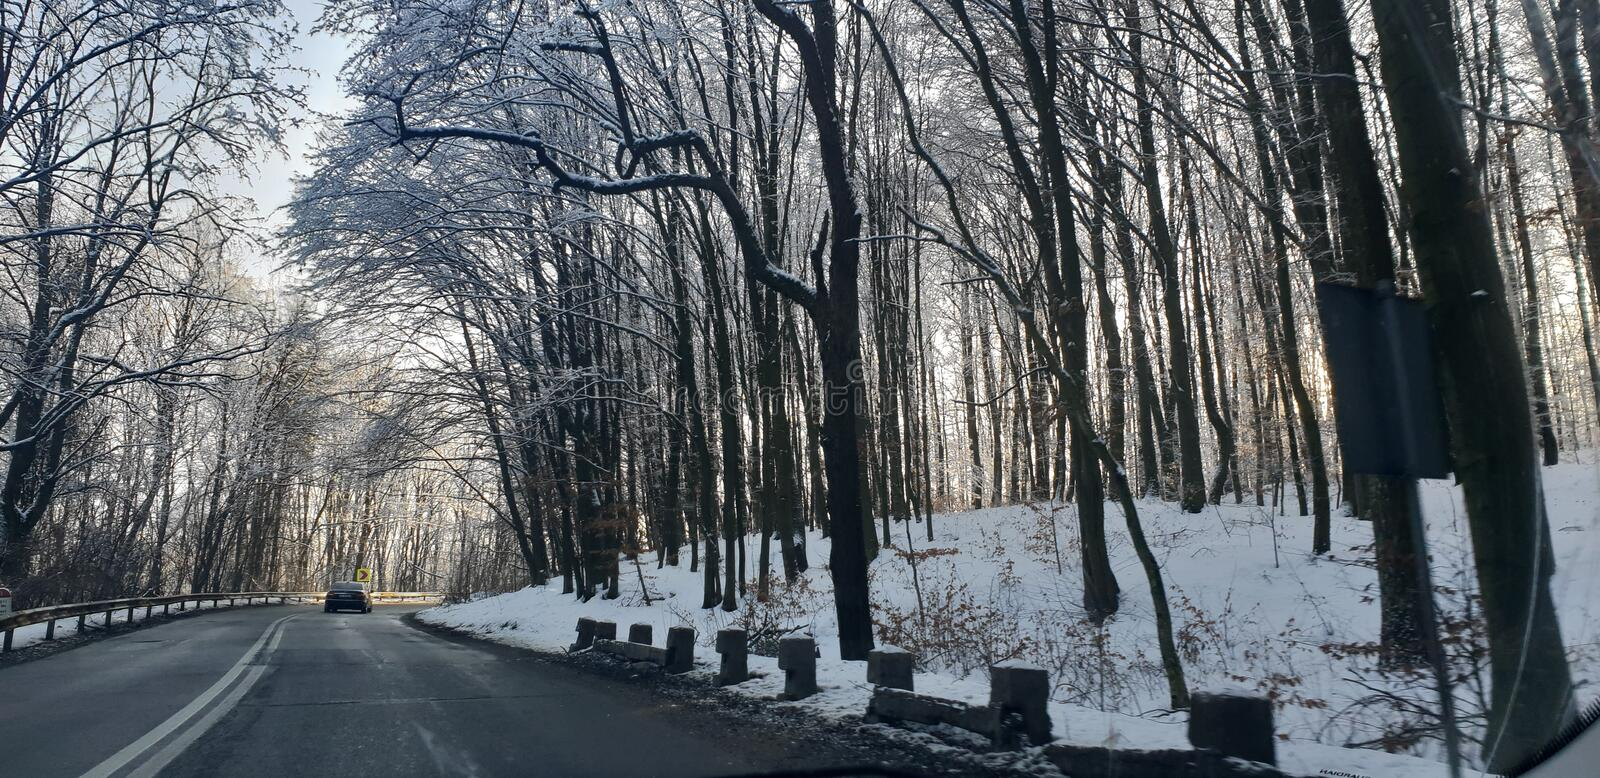 Winter road in early 2019 from cluj county to timisoara city highway  and rural road. Winter road early 2019 clun cluj county timisoara city highway rural royalty free stock image